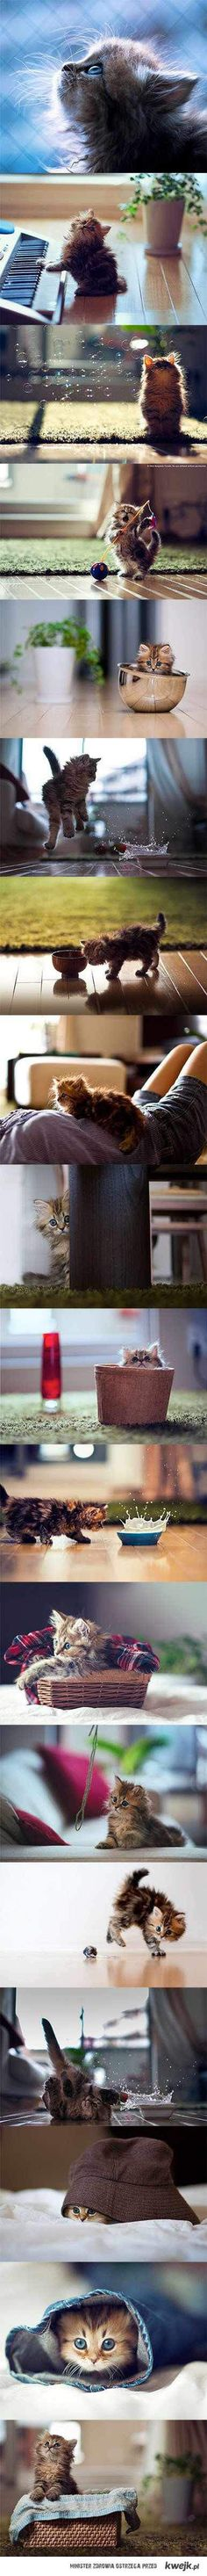 A day in the life of a kitten.  Sweet.